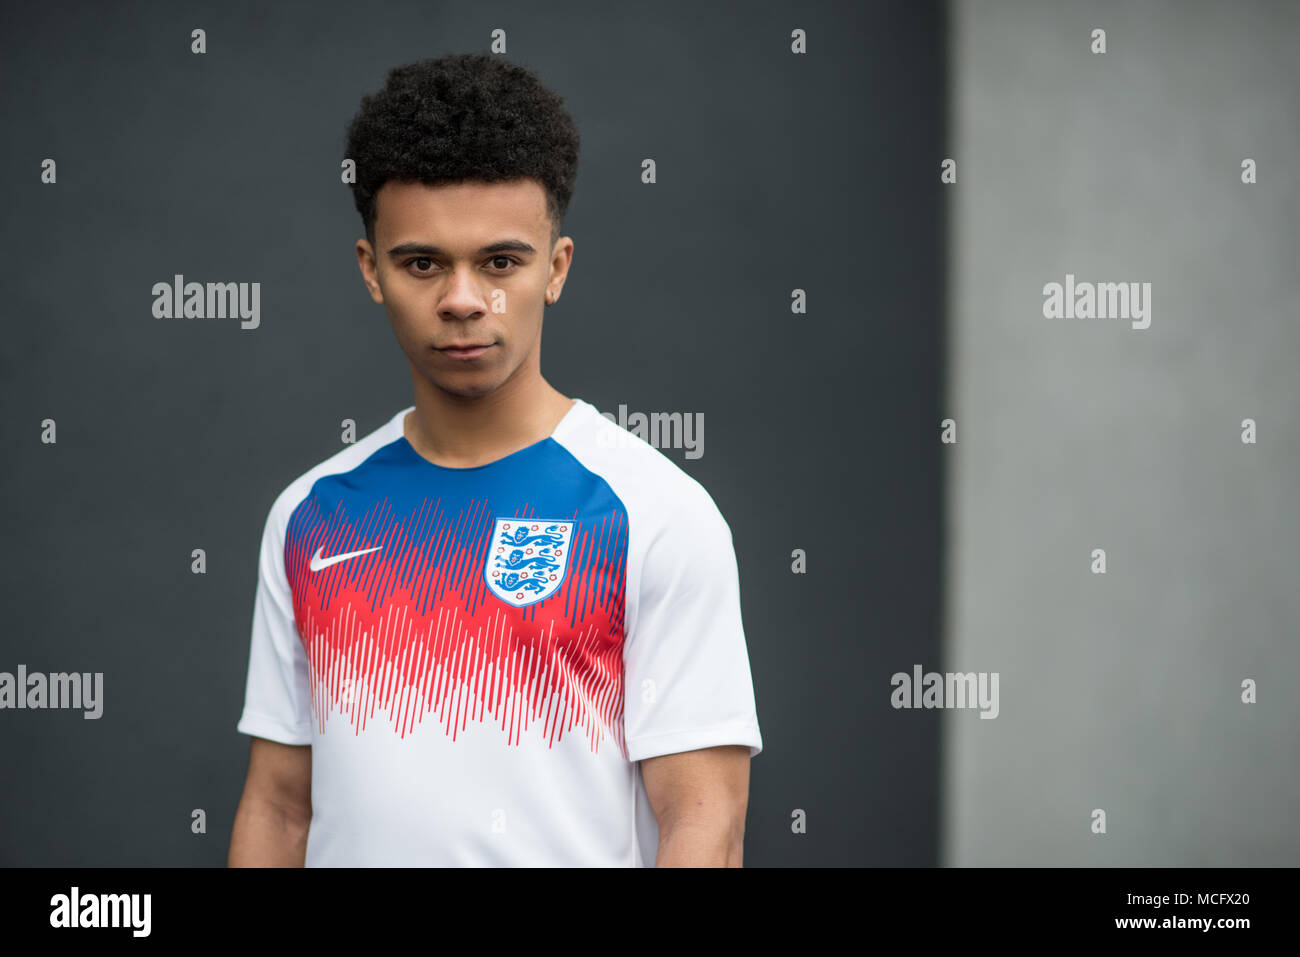 buy online 9eb34 49b5e England National Team Training Kit. FIFA World Cup 2018 ...